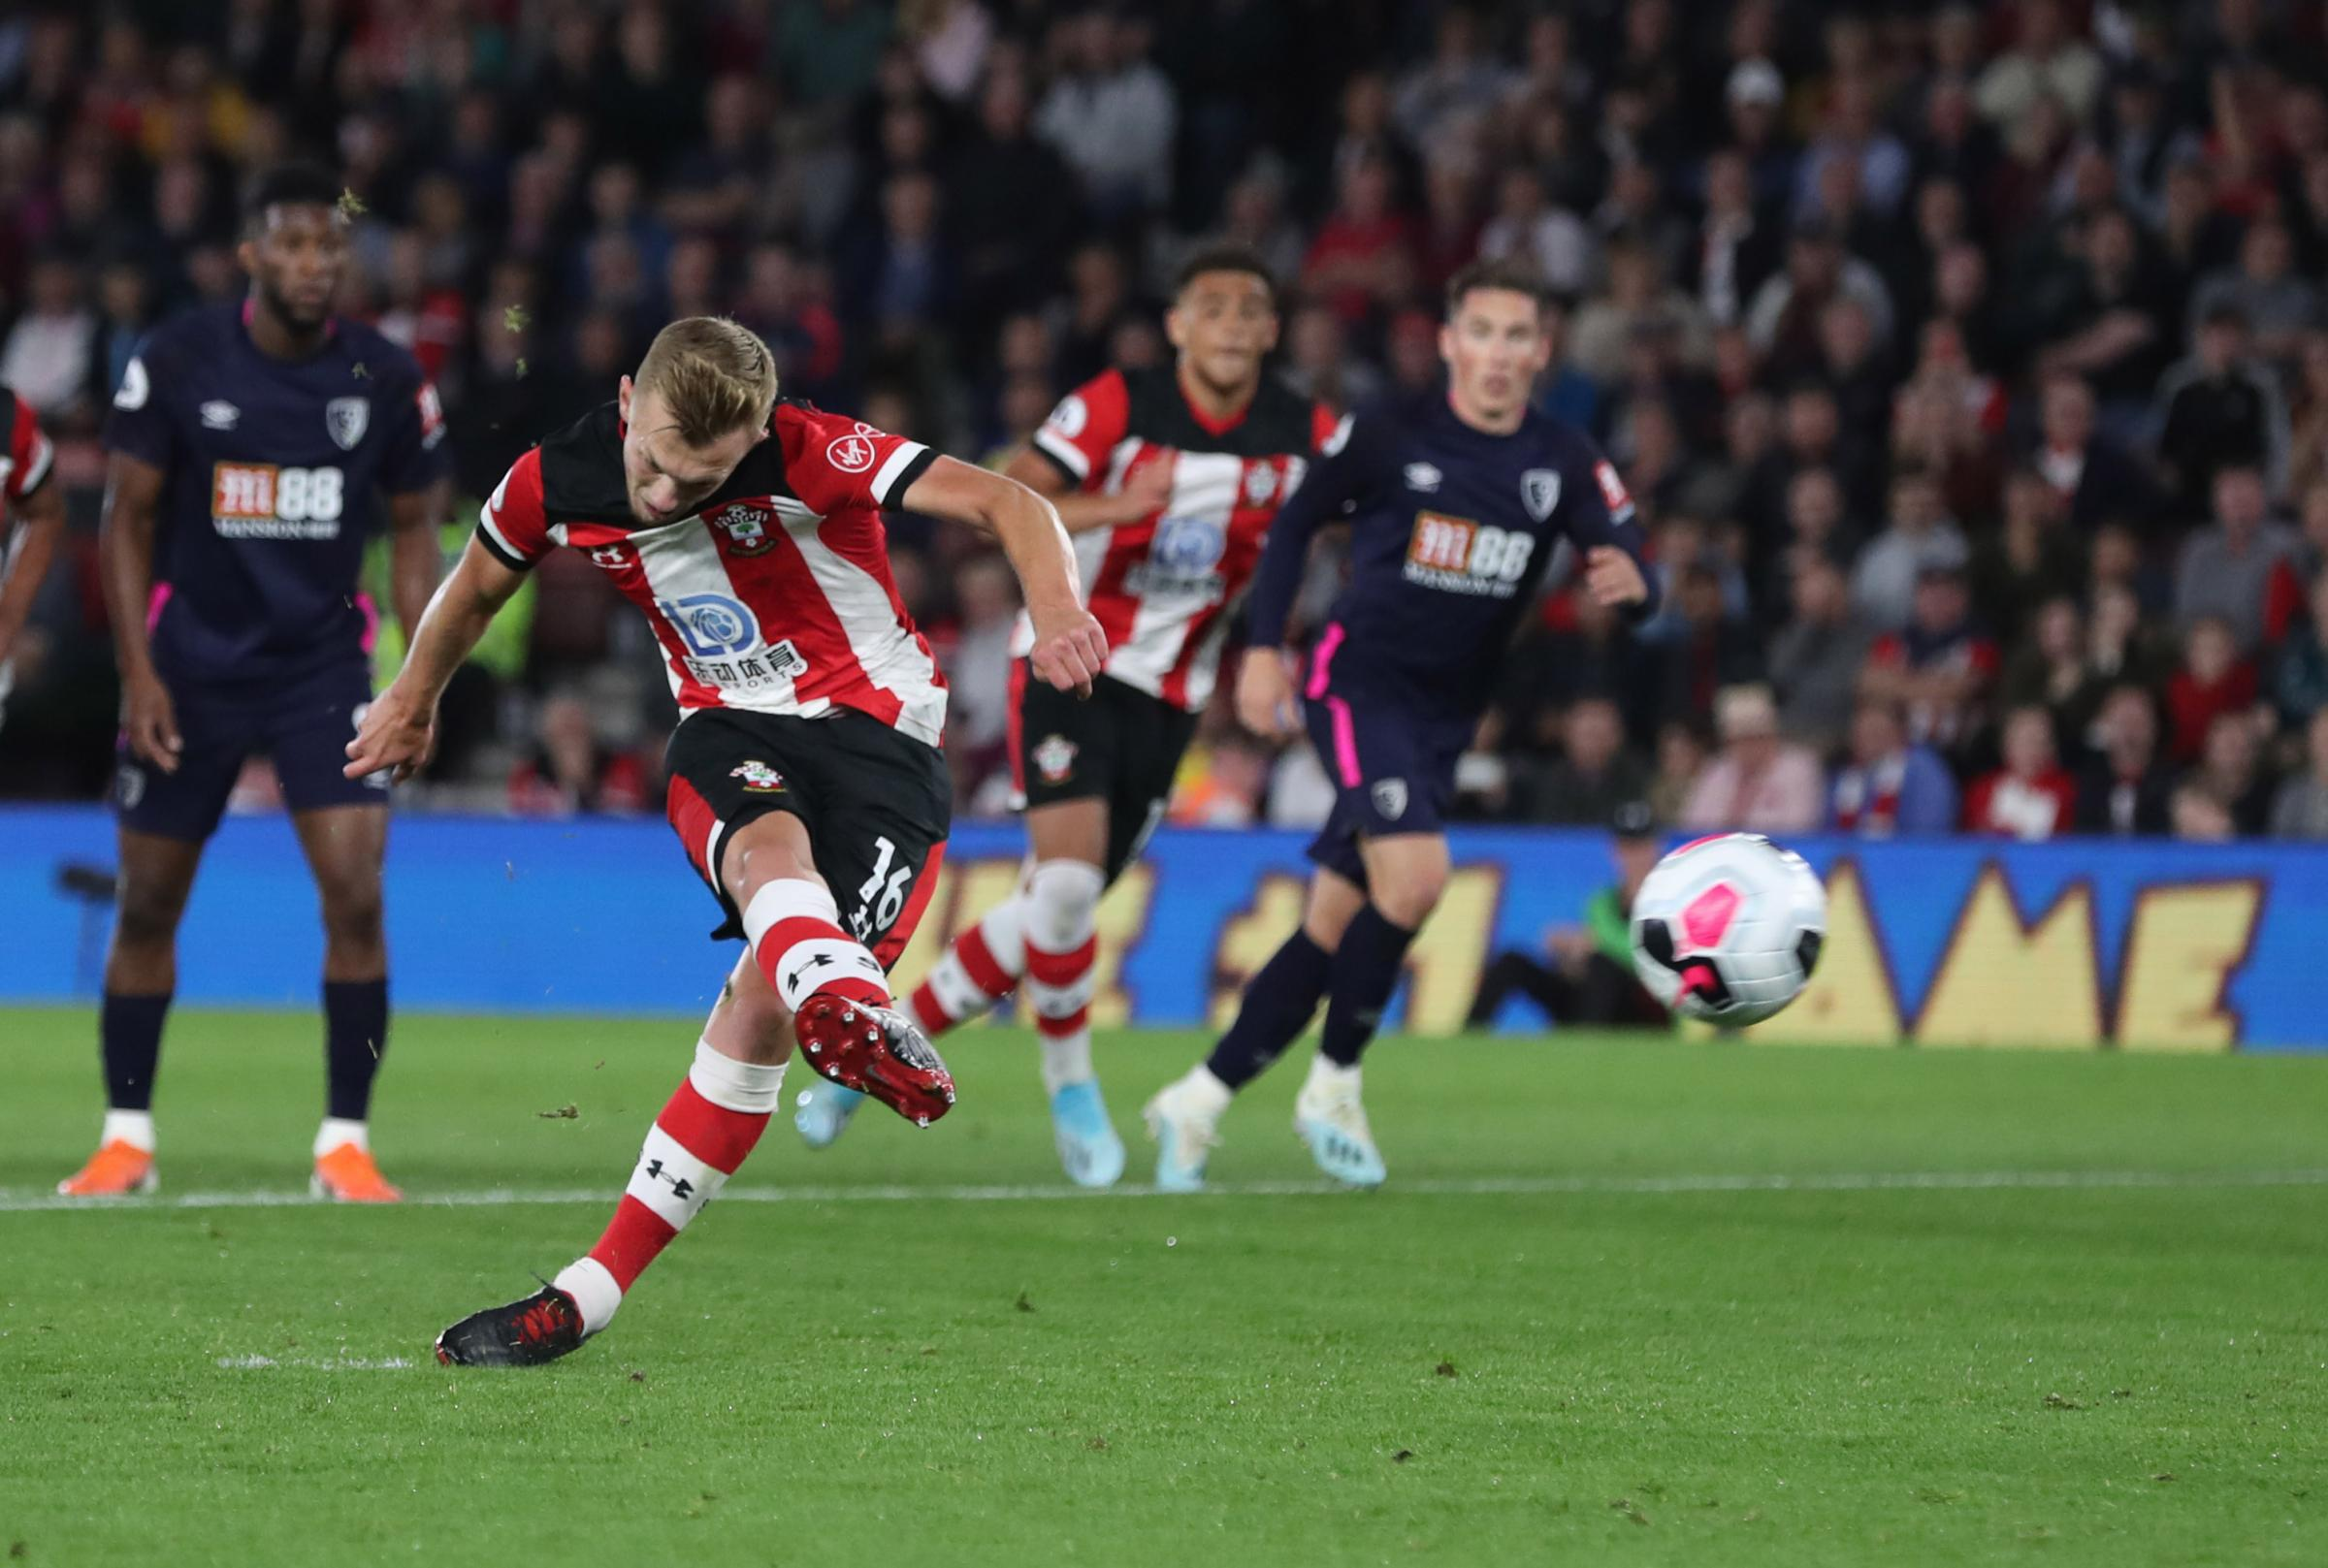 Southampton hope to better their set-piece record when they return to action